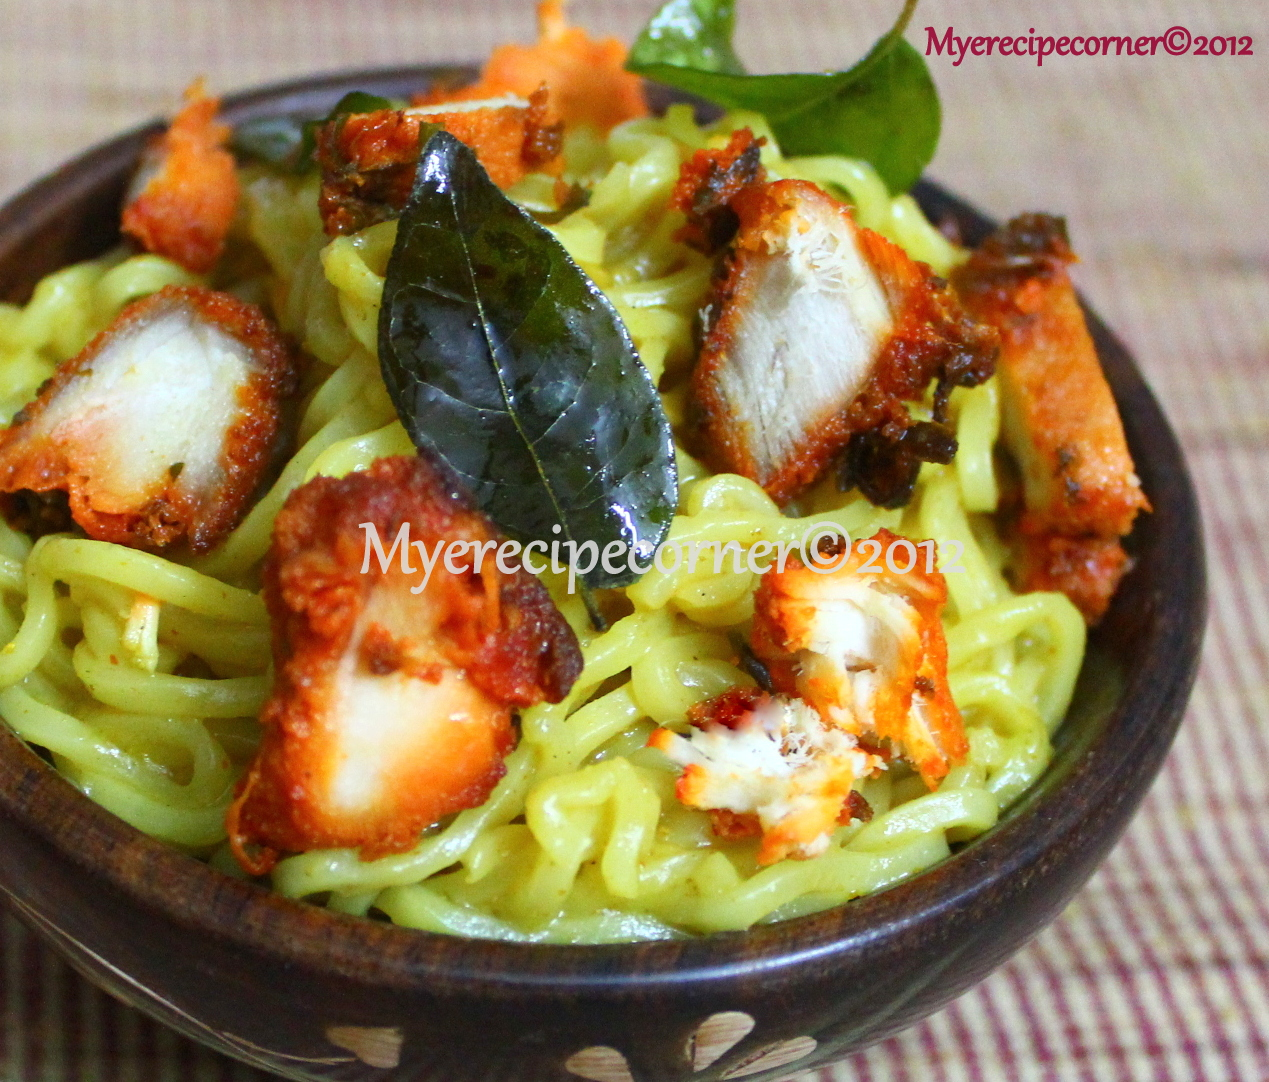 Noodles Masala Powder http://myerecipecorner.blogspot.com/2012/10/chicken-maggi-noodles-recipe-recipes.html